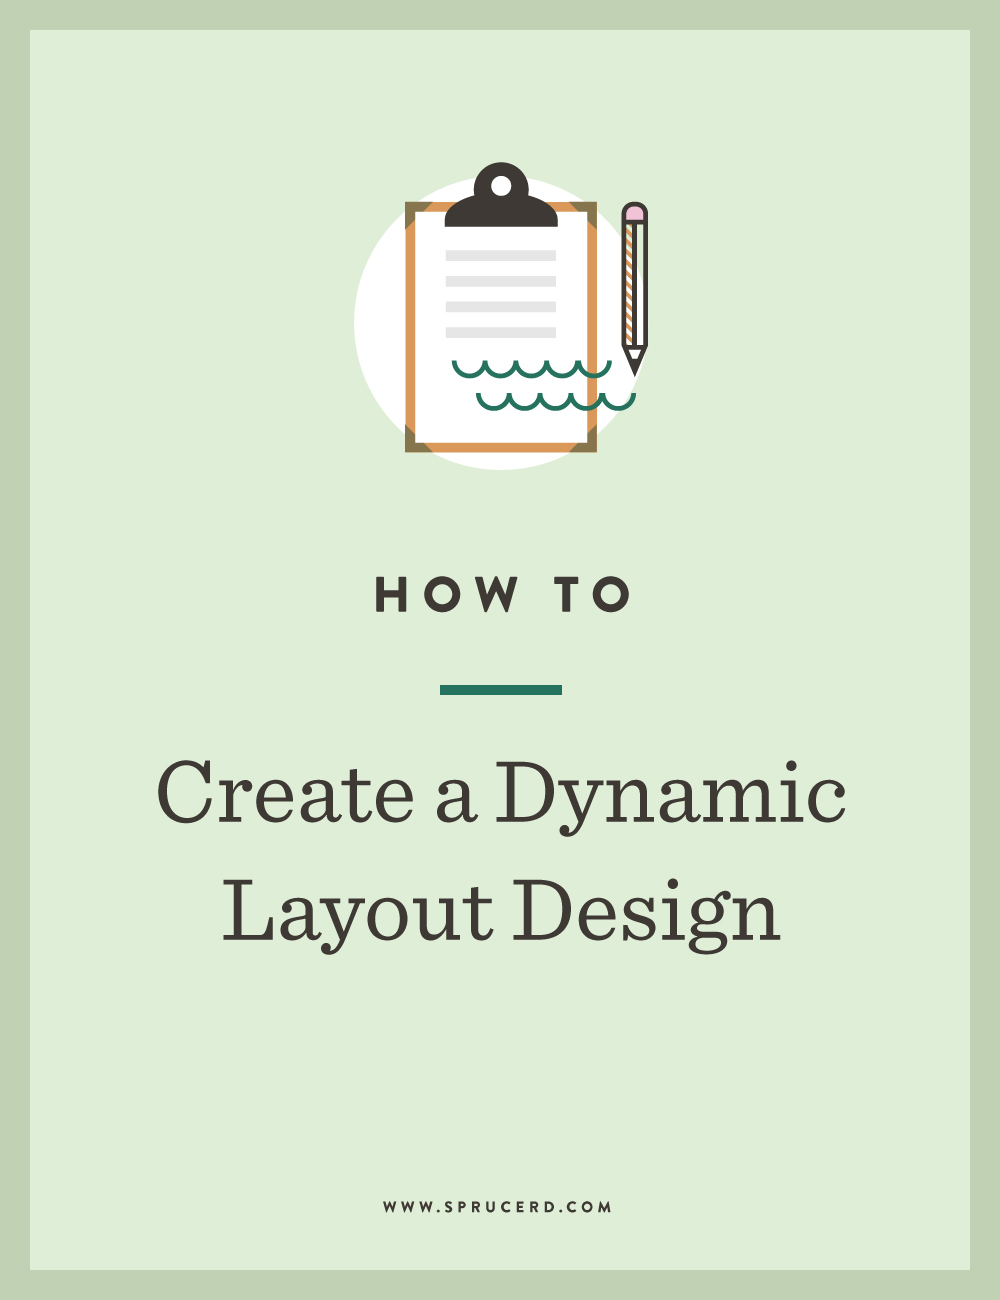 How to create a dynamic layout design | Spruce Rd.